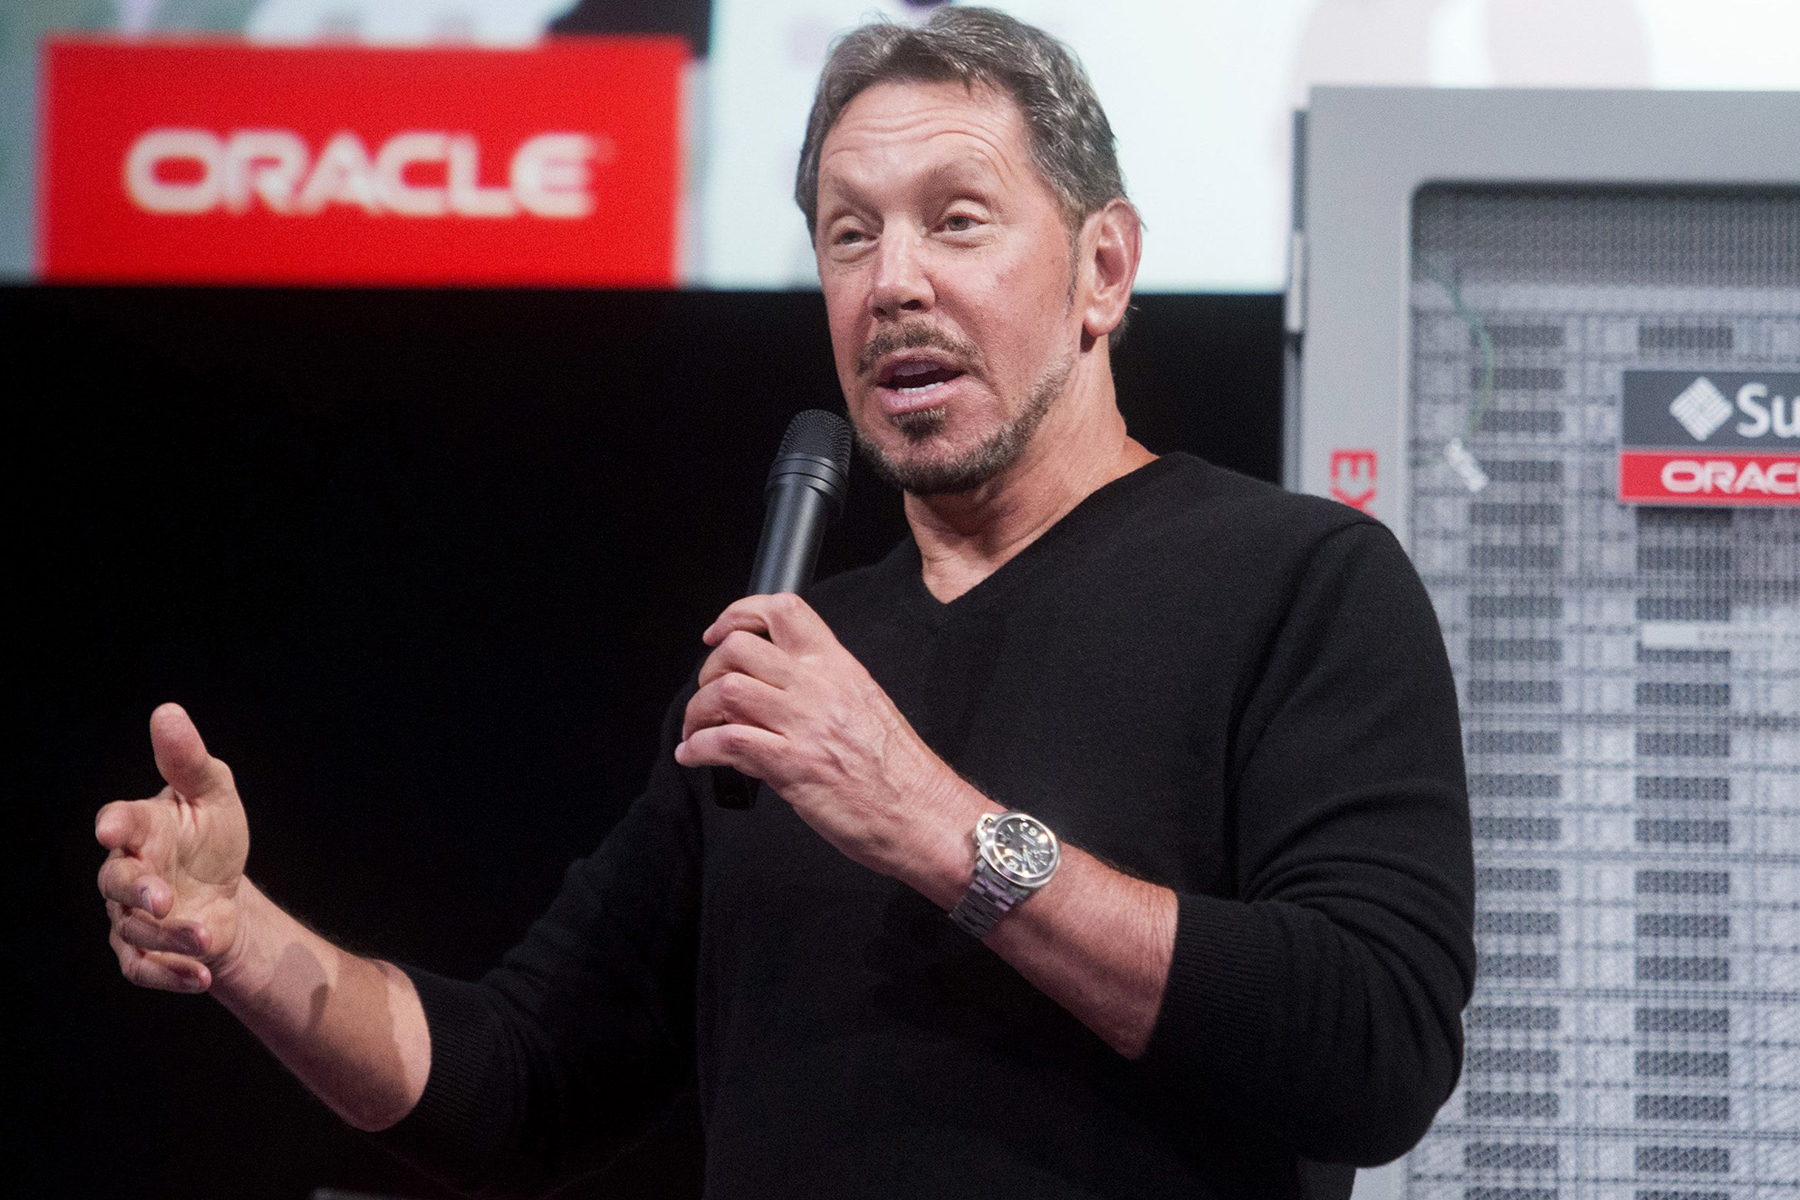 Oracle Corp Chief Executive Larry Ellison introduces the Oracle Database In-Memory during a launch event at the company's headquarters in Redwood Shores, California in this June 10, 2014 file photo. Oracle Corp said it would buy Micros Systems in a $5.3 billion deal as the world's No. 2 business software maker looks to boost flagging growth through acquisitions. REUTERS/Noah Berger/Files (UNITED STATES - Tags: SCIENCE TECHNOLOGY BUSINESS)